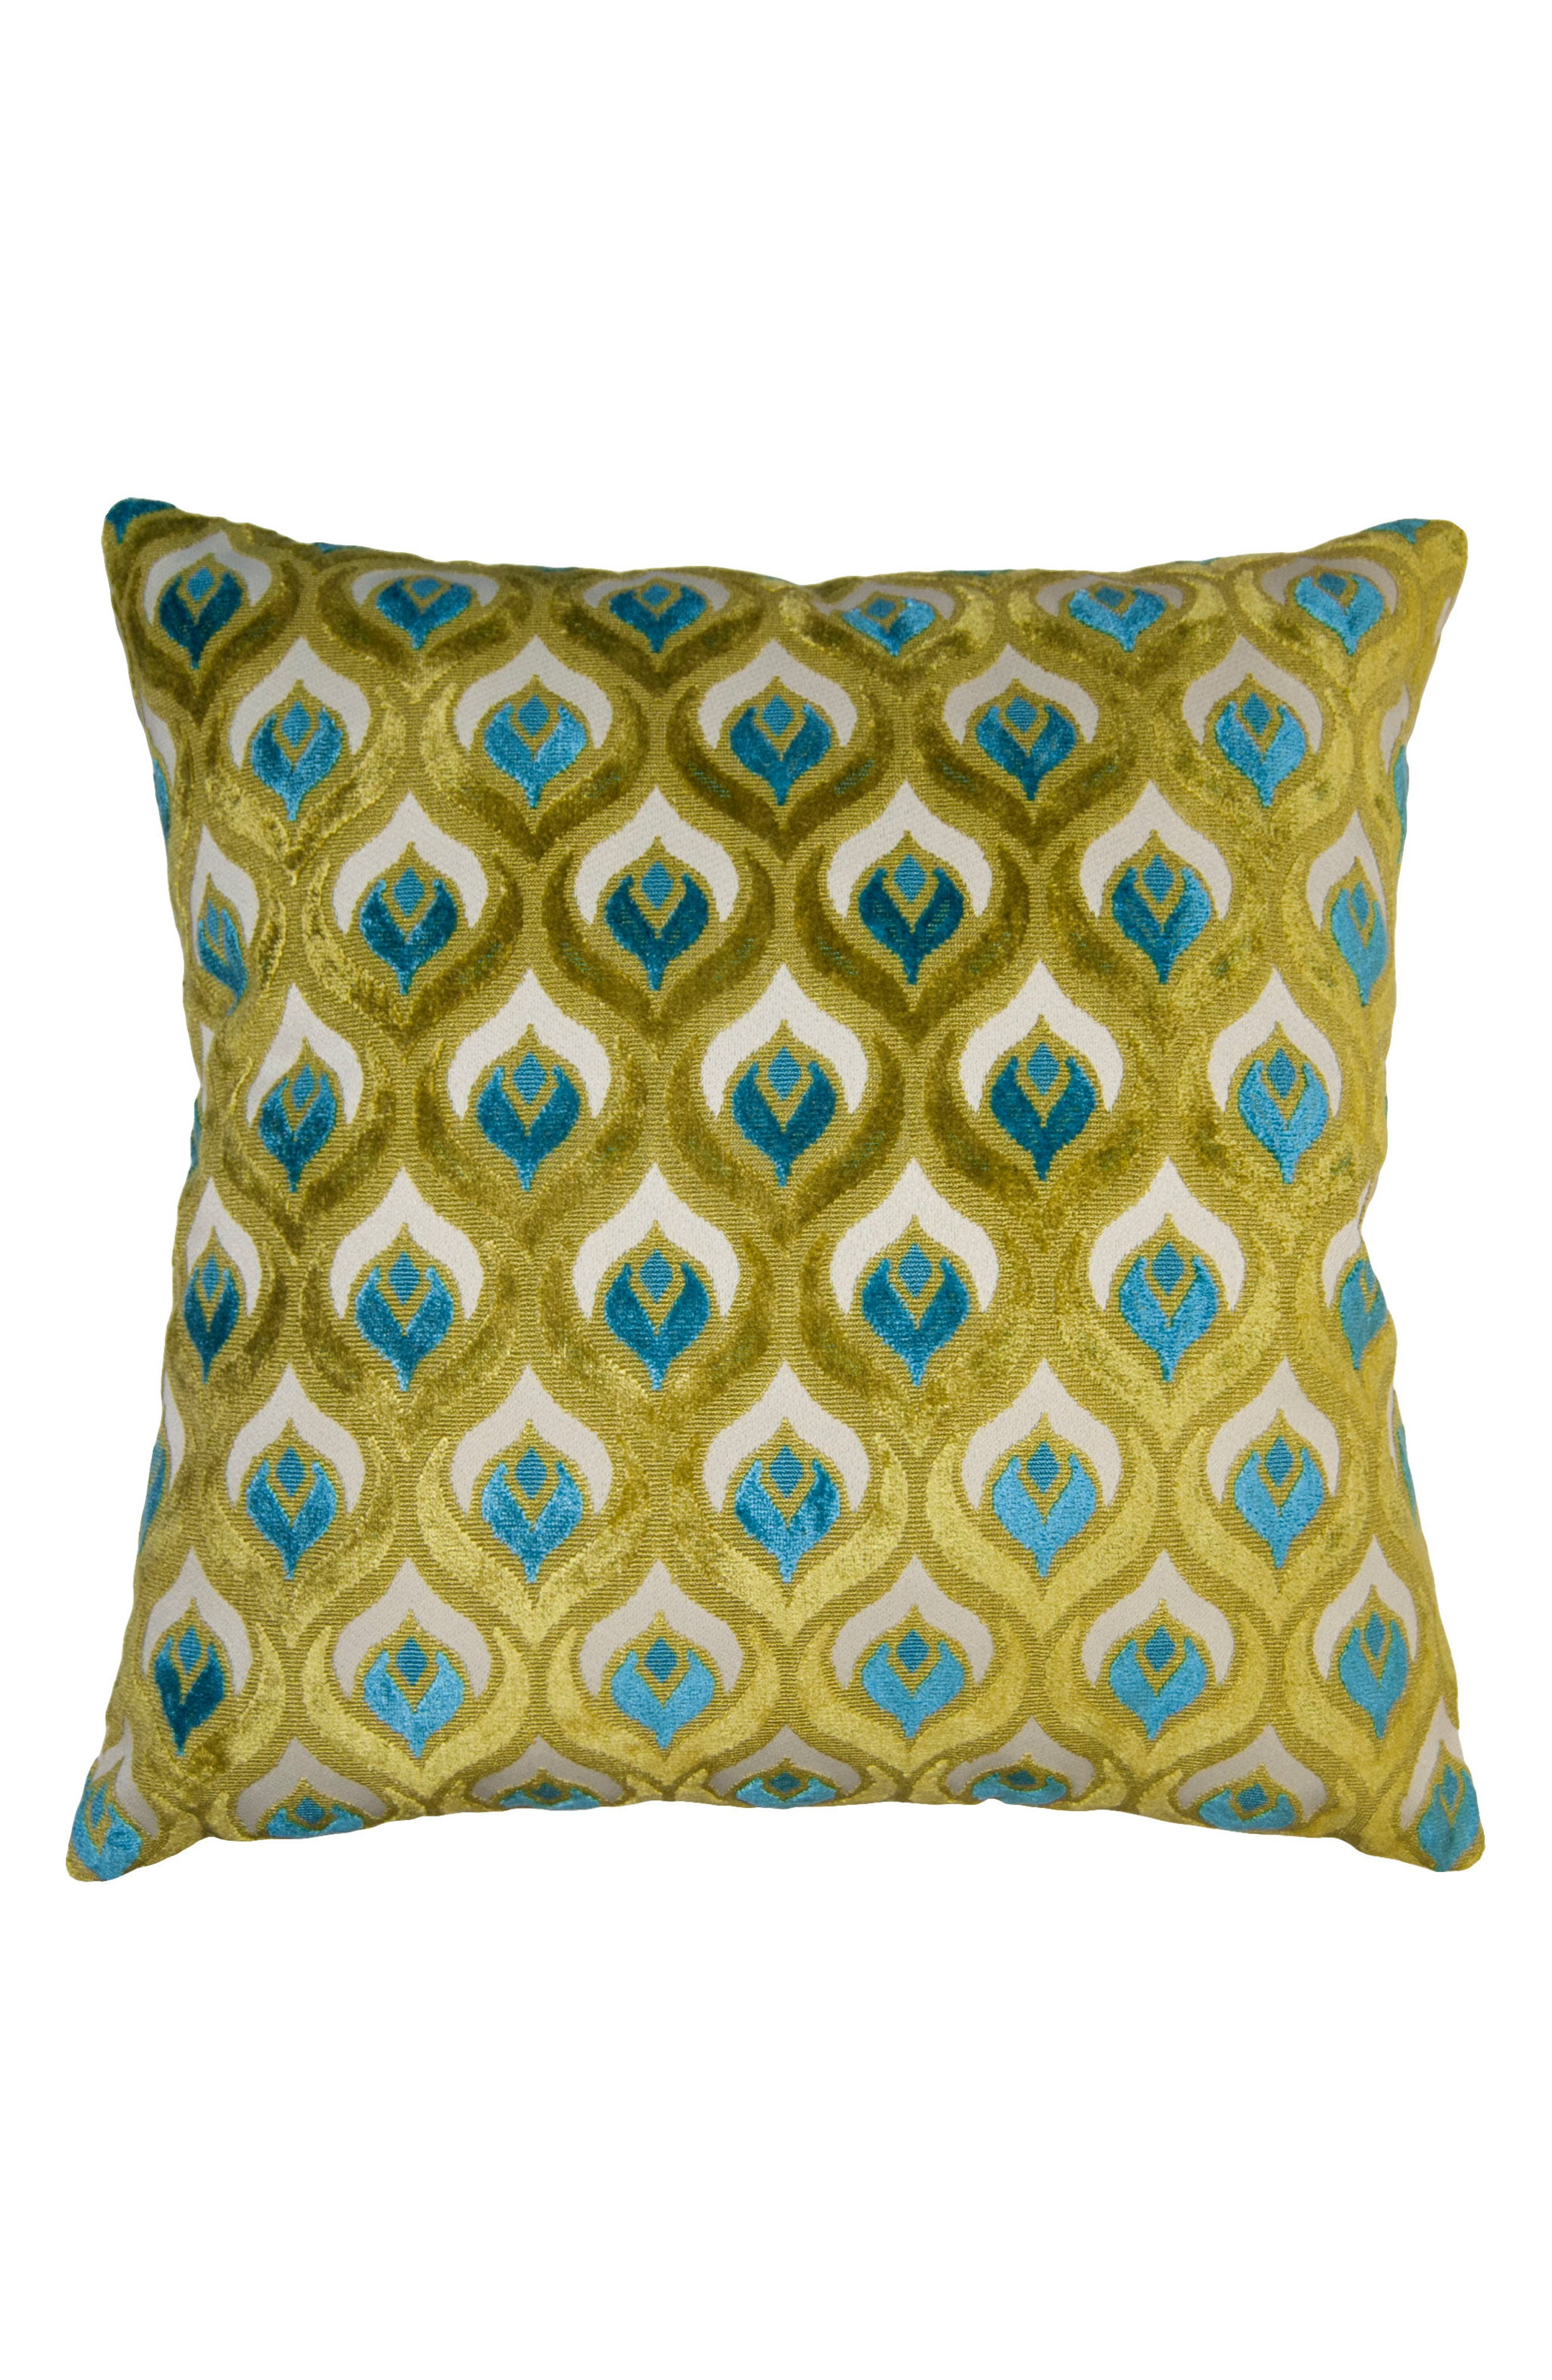 Riviera Ornate Accent Pillow,                             Main thumbnail 1, color,                             Green